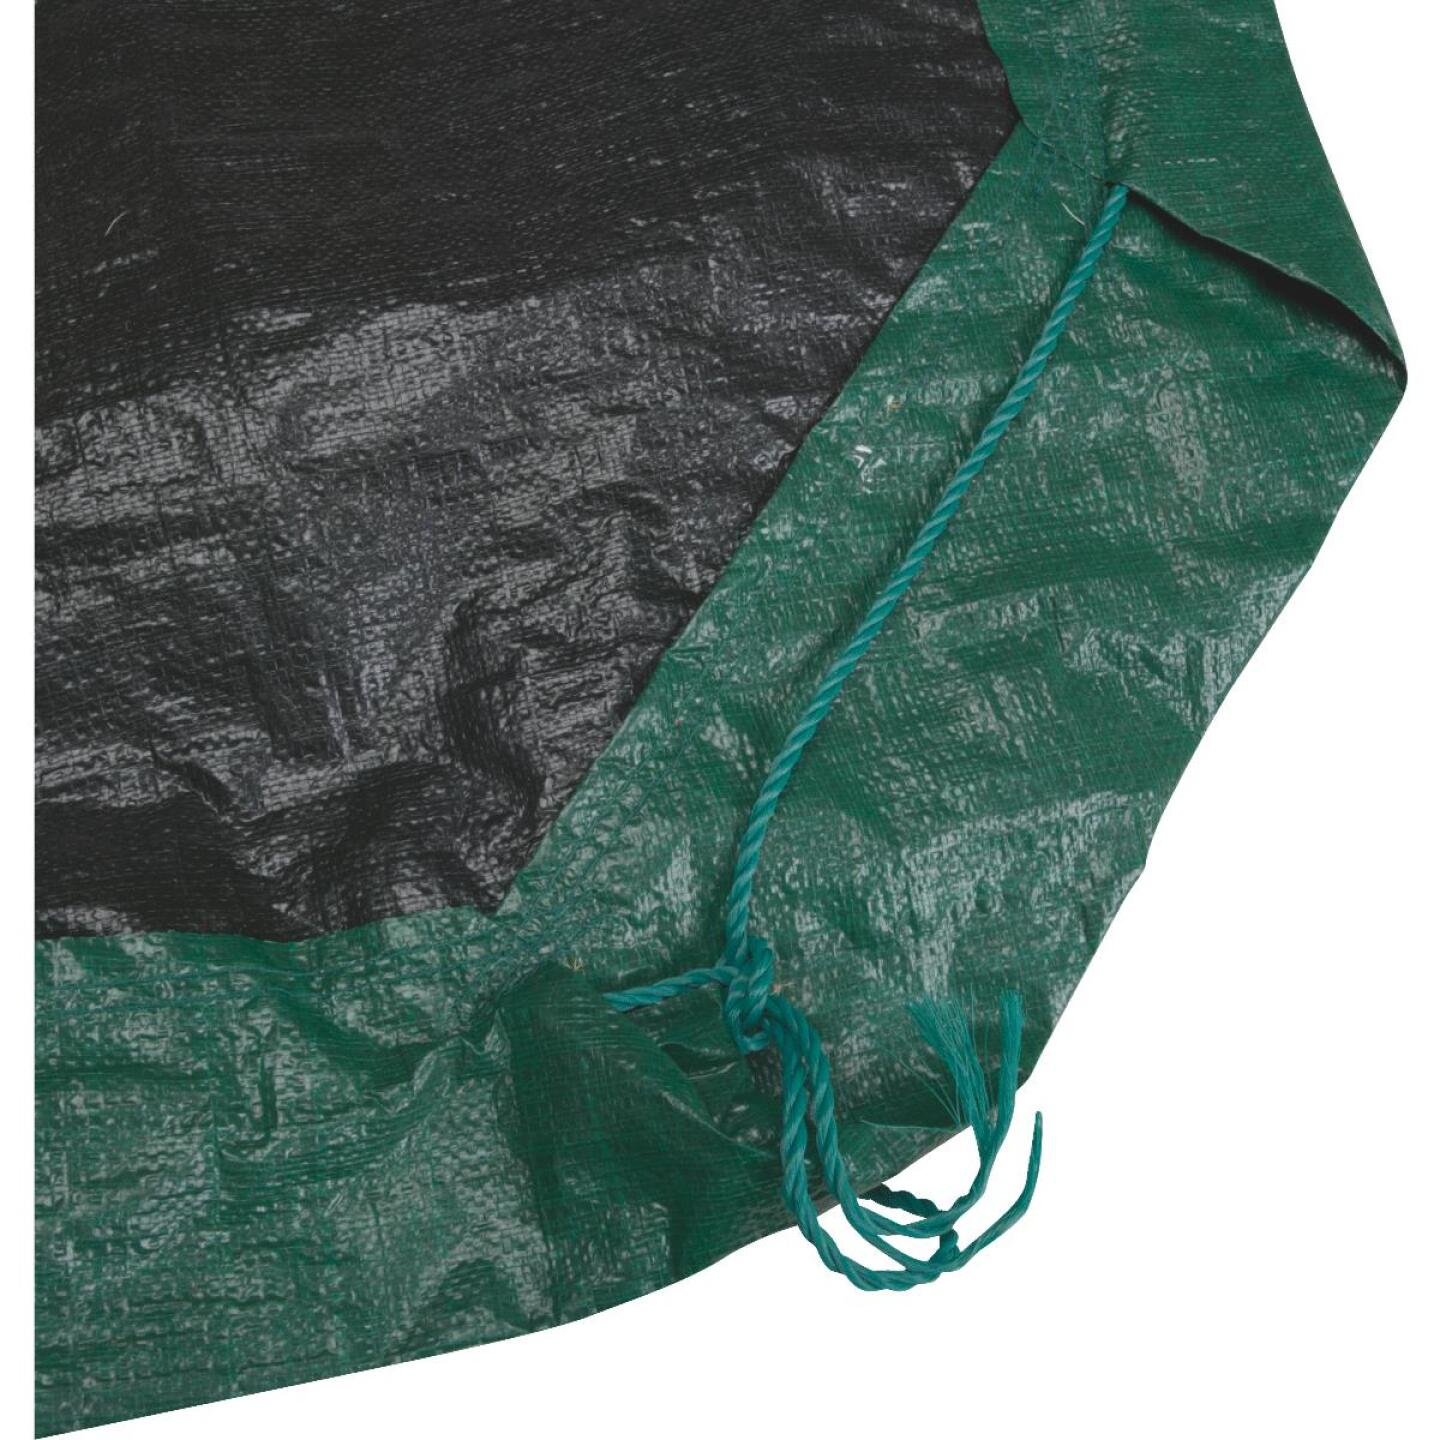 Do it 9 Ft. x 9 Ft. Poly Fabric Green Lawn Cleanup Tarp Image 2